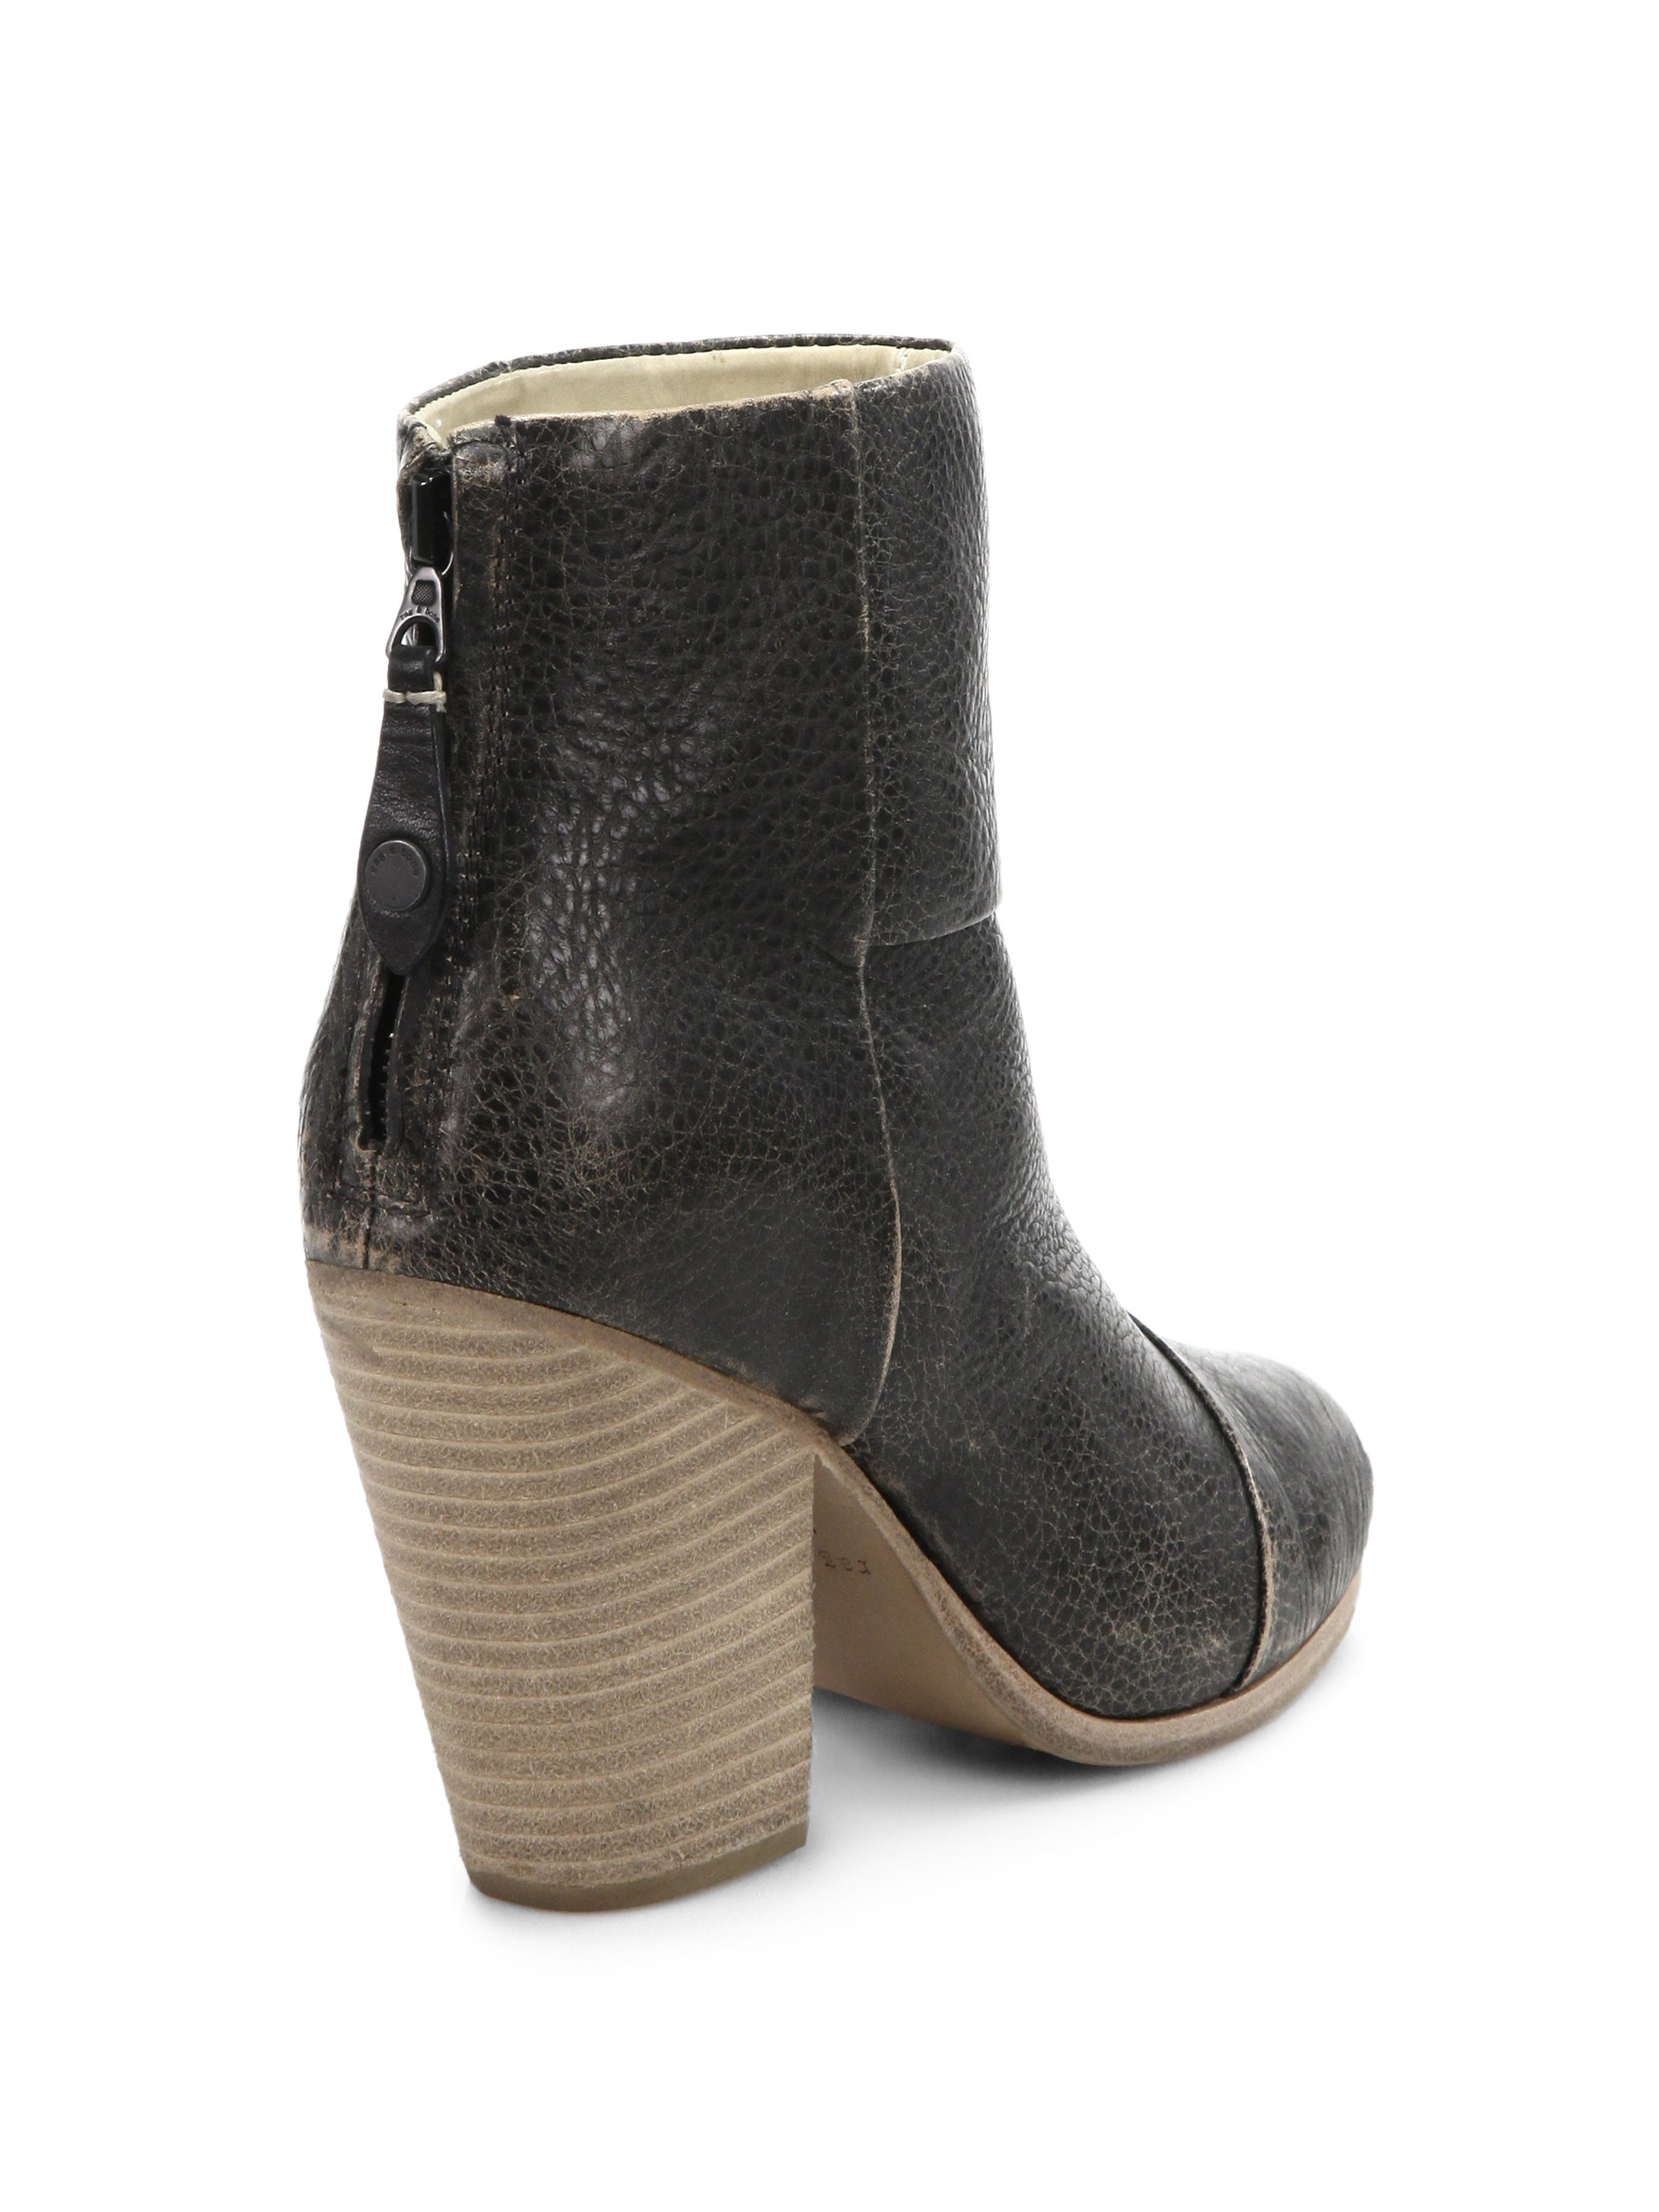 Rag & Bone Distressed Ankle Boots discount outlet store discount outlet locations E3spI4pv3